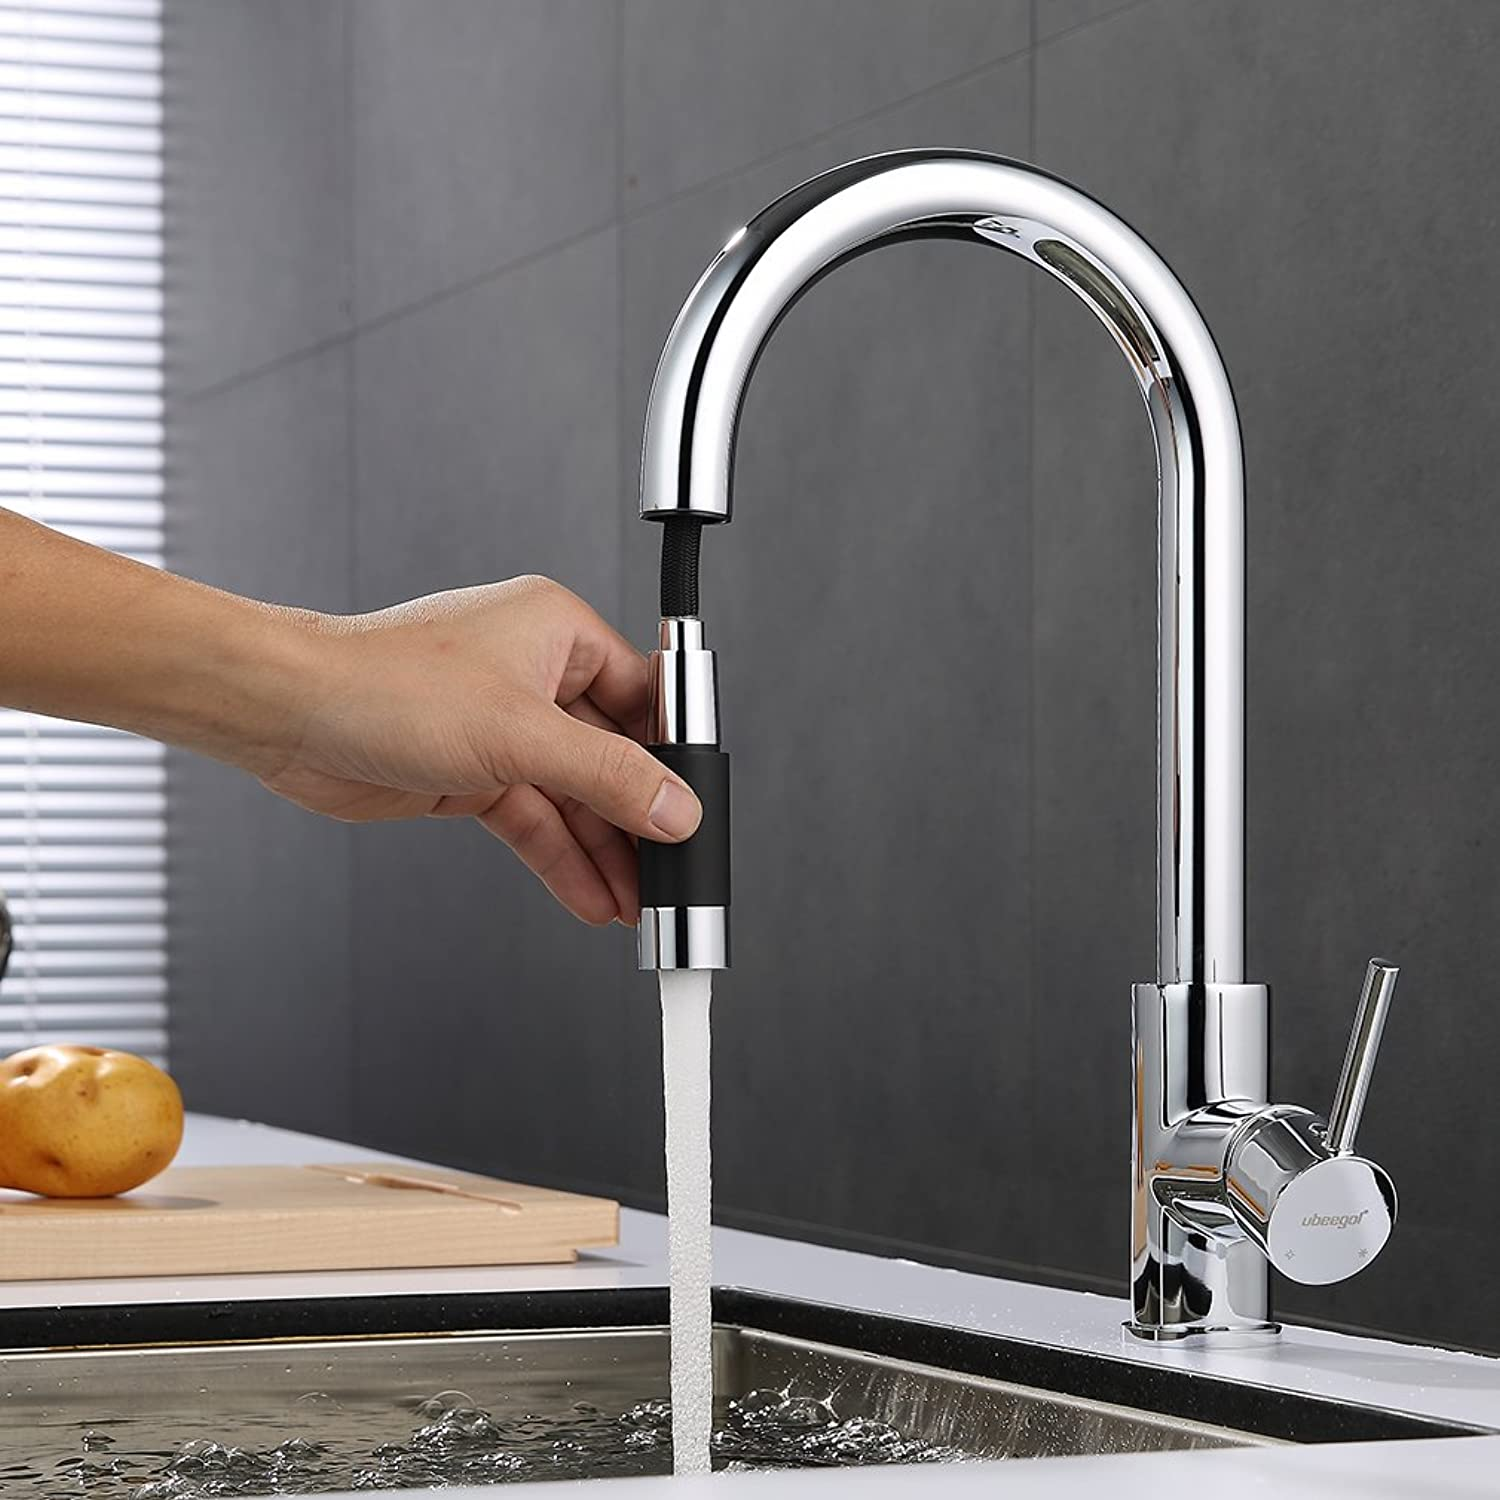 Ubeegol chrome brass water tap, kitchen pull out single lever mixer faucet with sprinkler, chrome kitchen sink tap, 360?° swivel